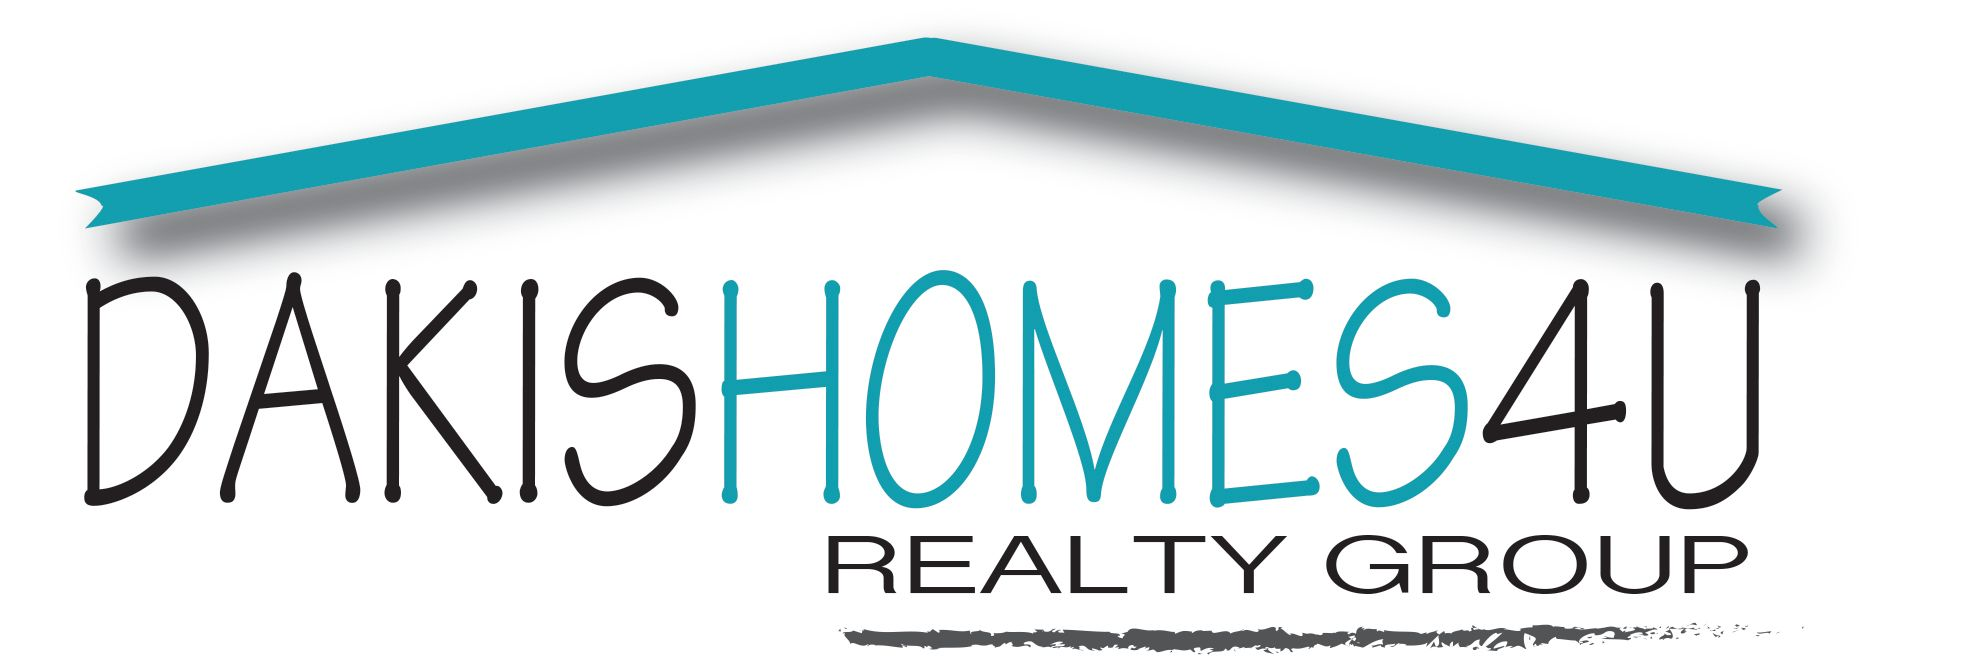 NorthEast Queens Real Estate| DakisHomes4u Realty